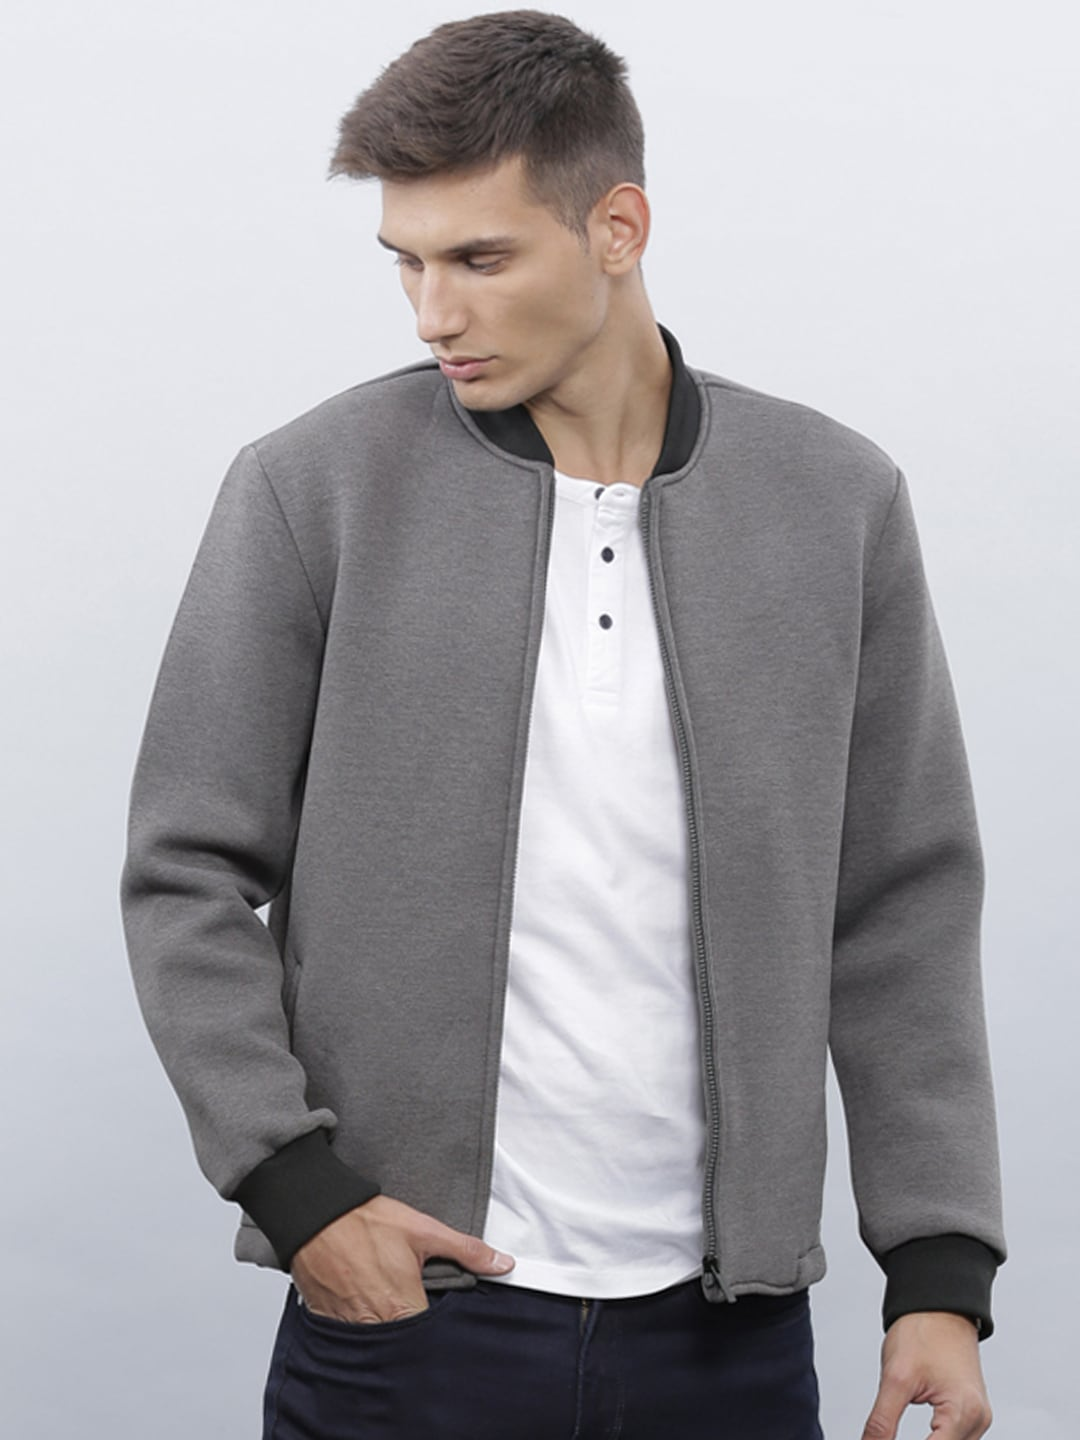 Mens Grey Bomber Jacket | Outdoor Jacket